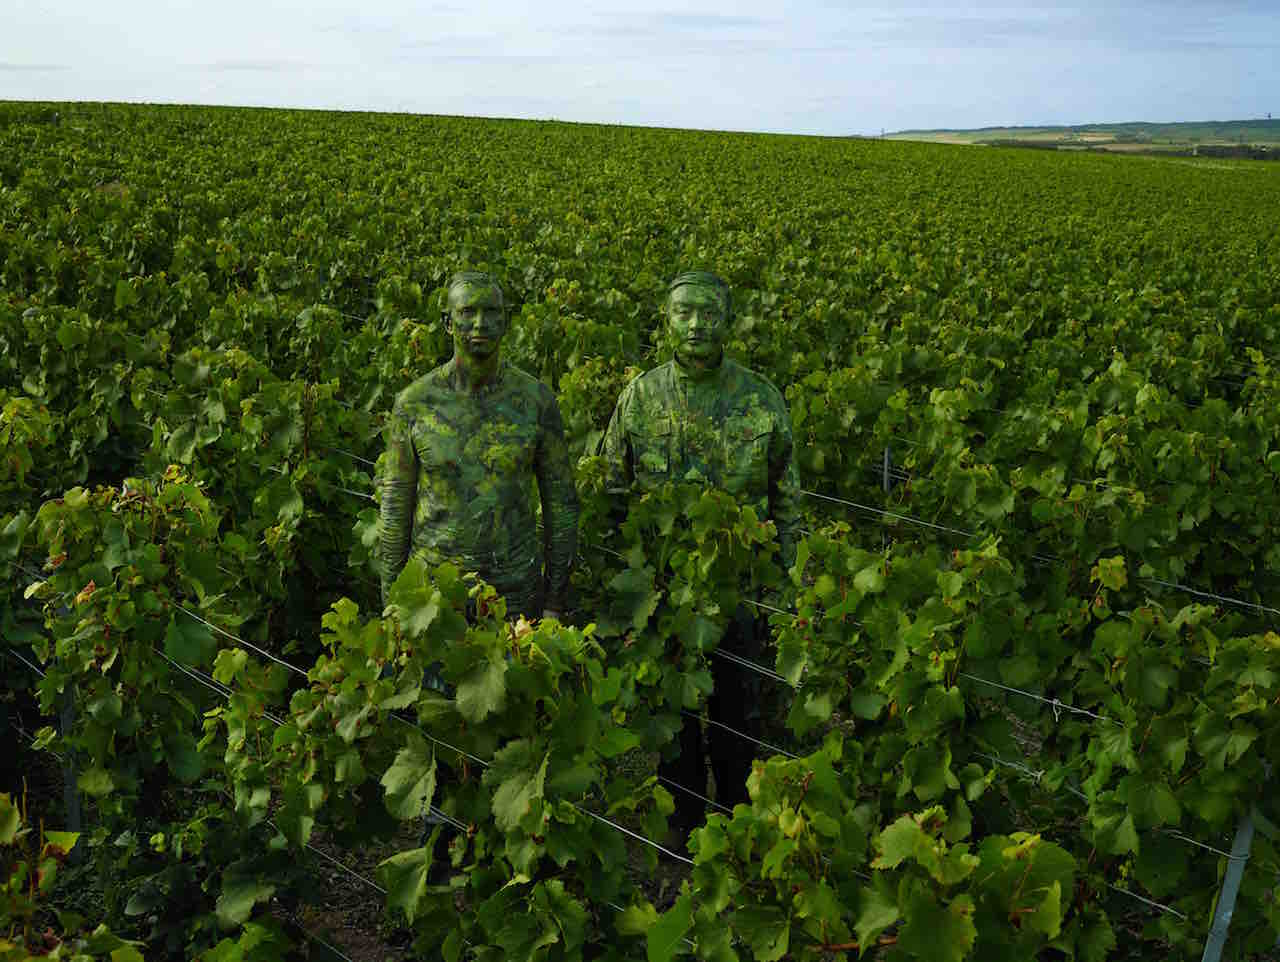 Hiding-in-the-vineyards-with-the-Ruinart-Cellar-Master-1-1.jpg